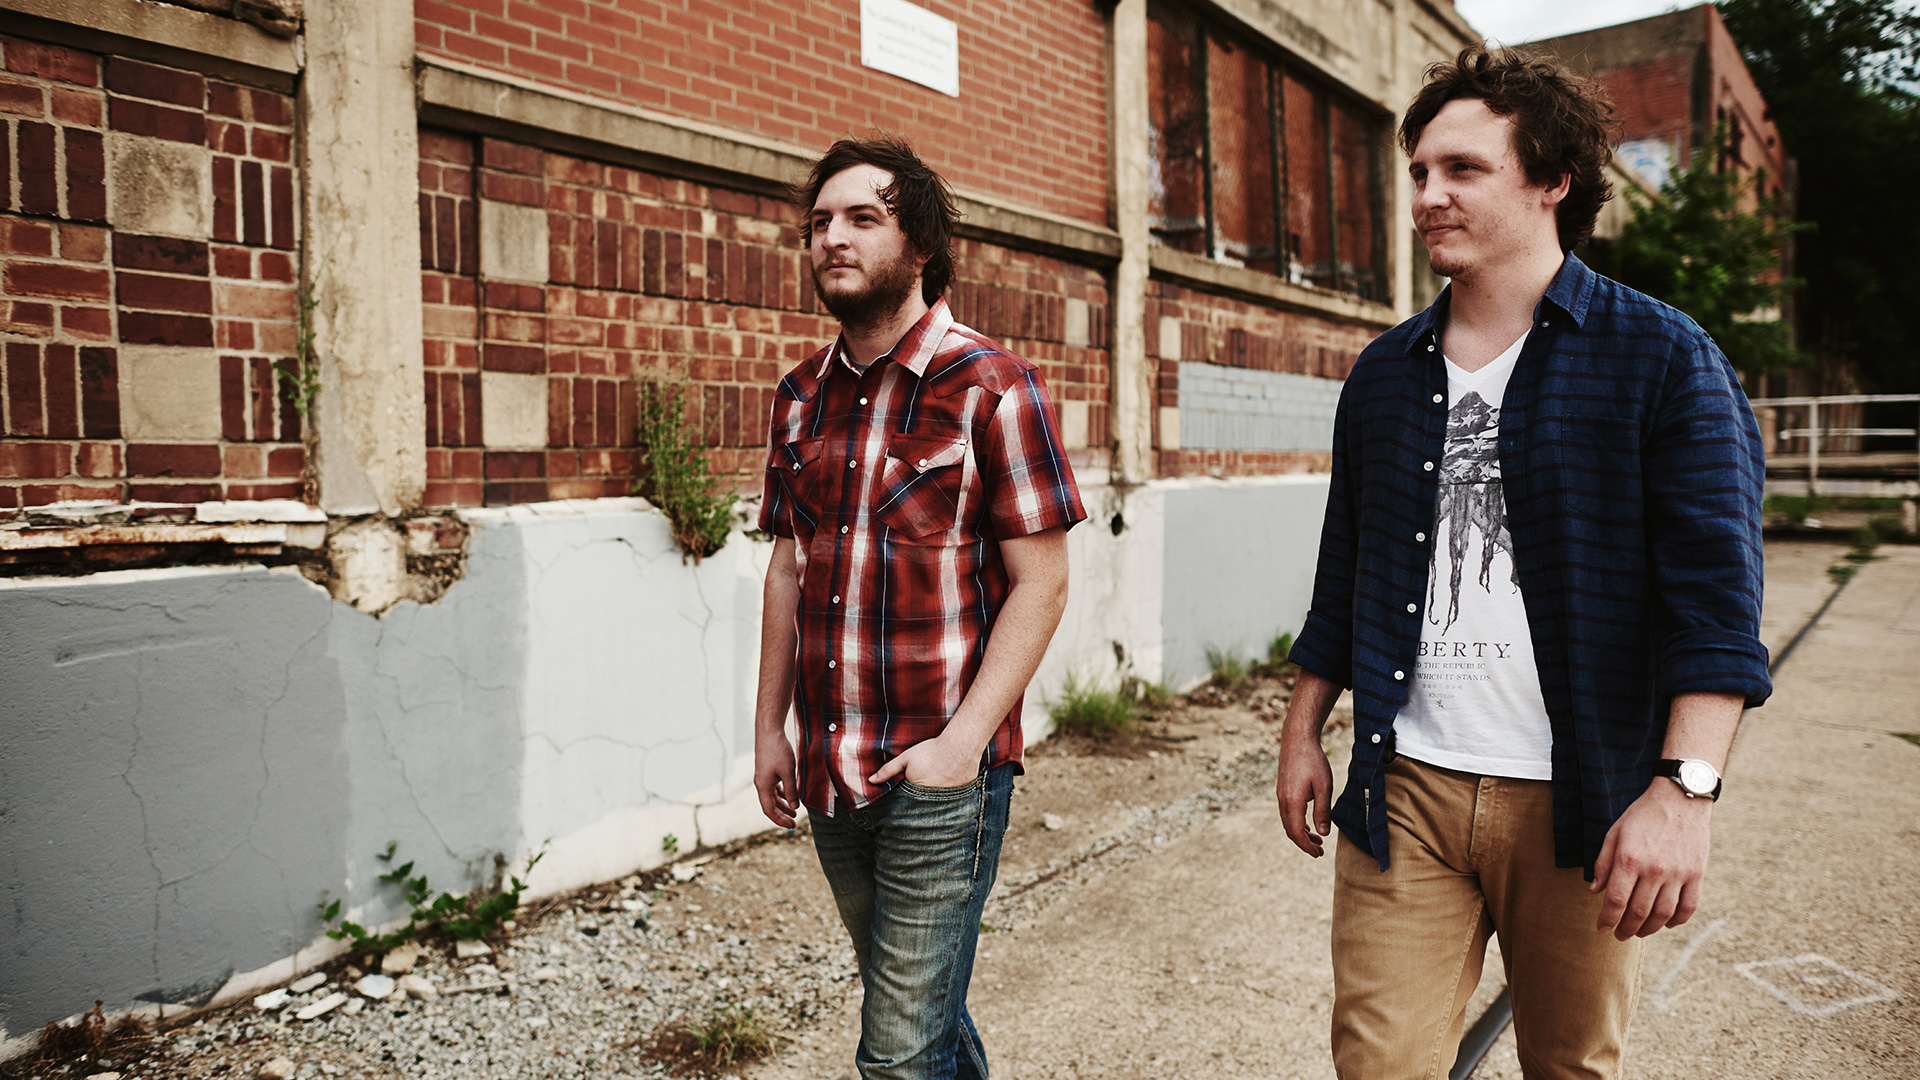 Powell Brothers' new single almost 'too nerdy' to release